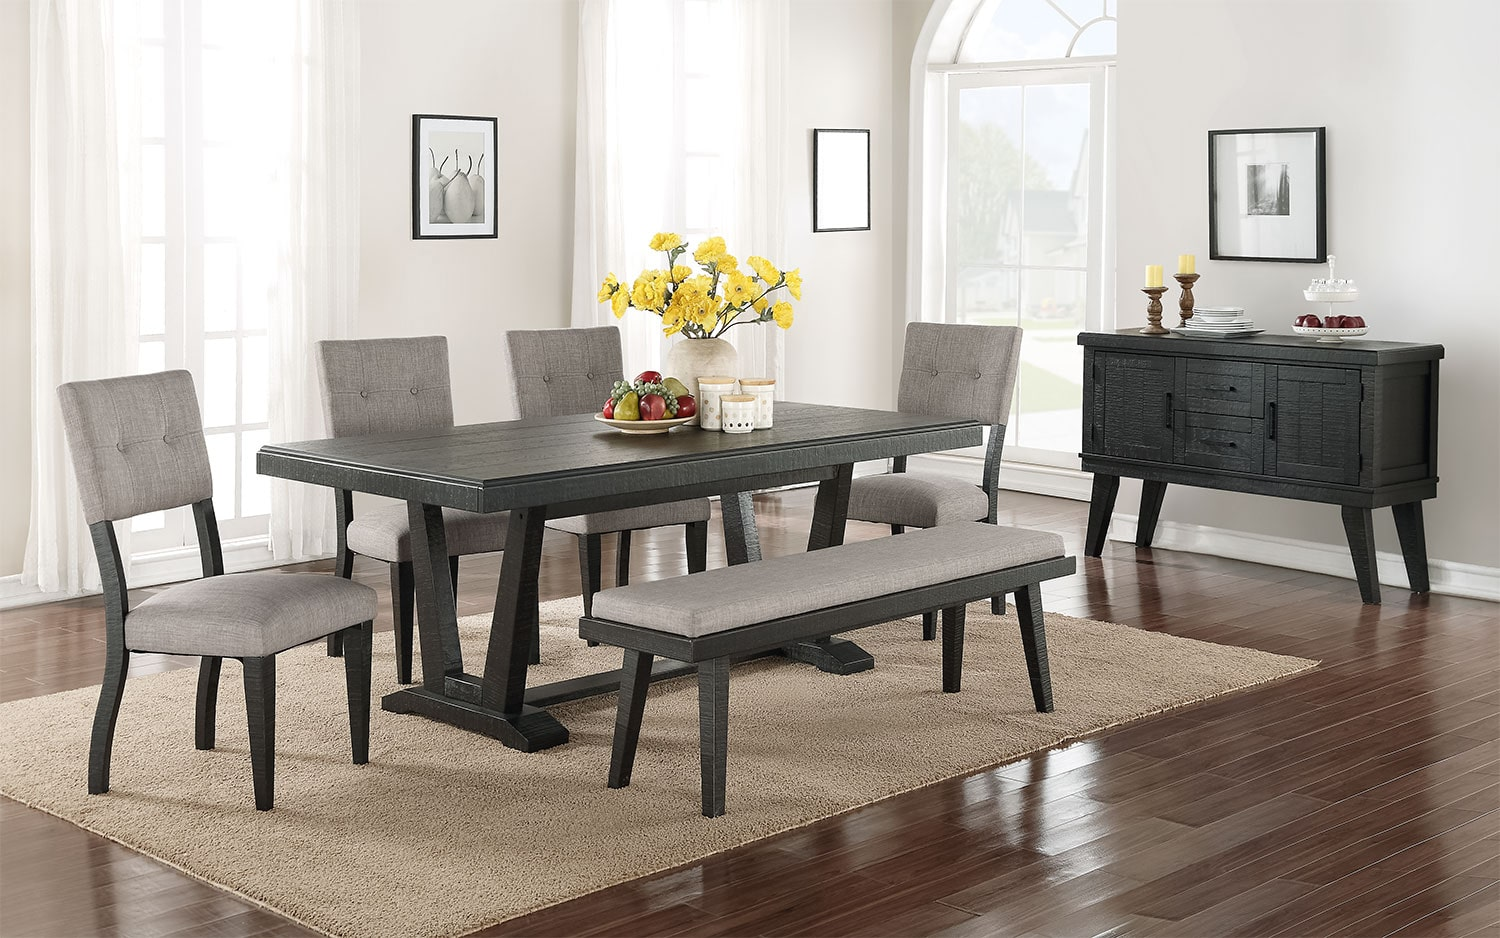 Imari 7 piece dining room set black and grey leon 39 s for Dining room furniture designs